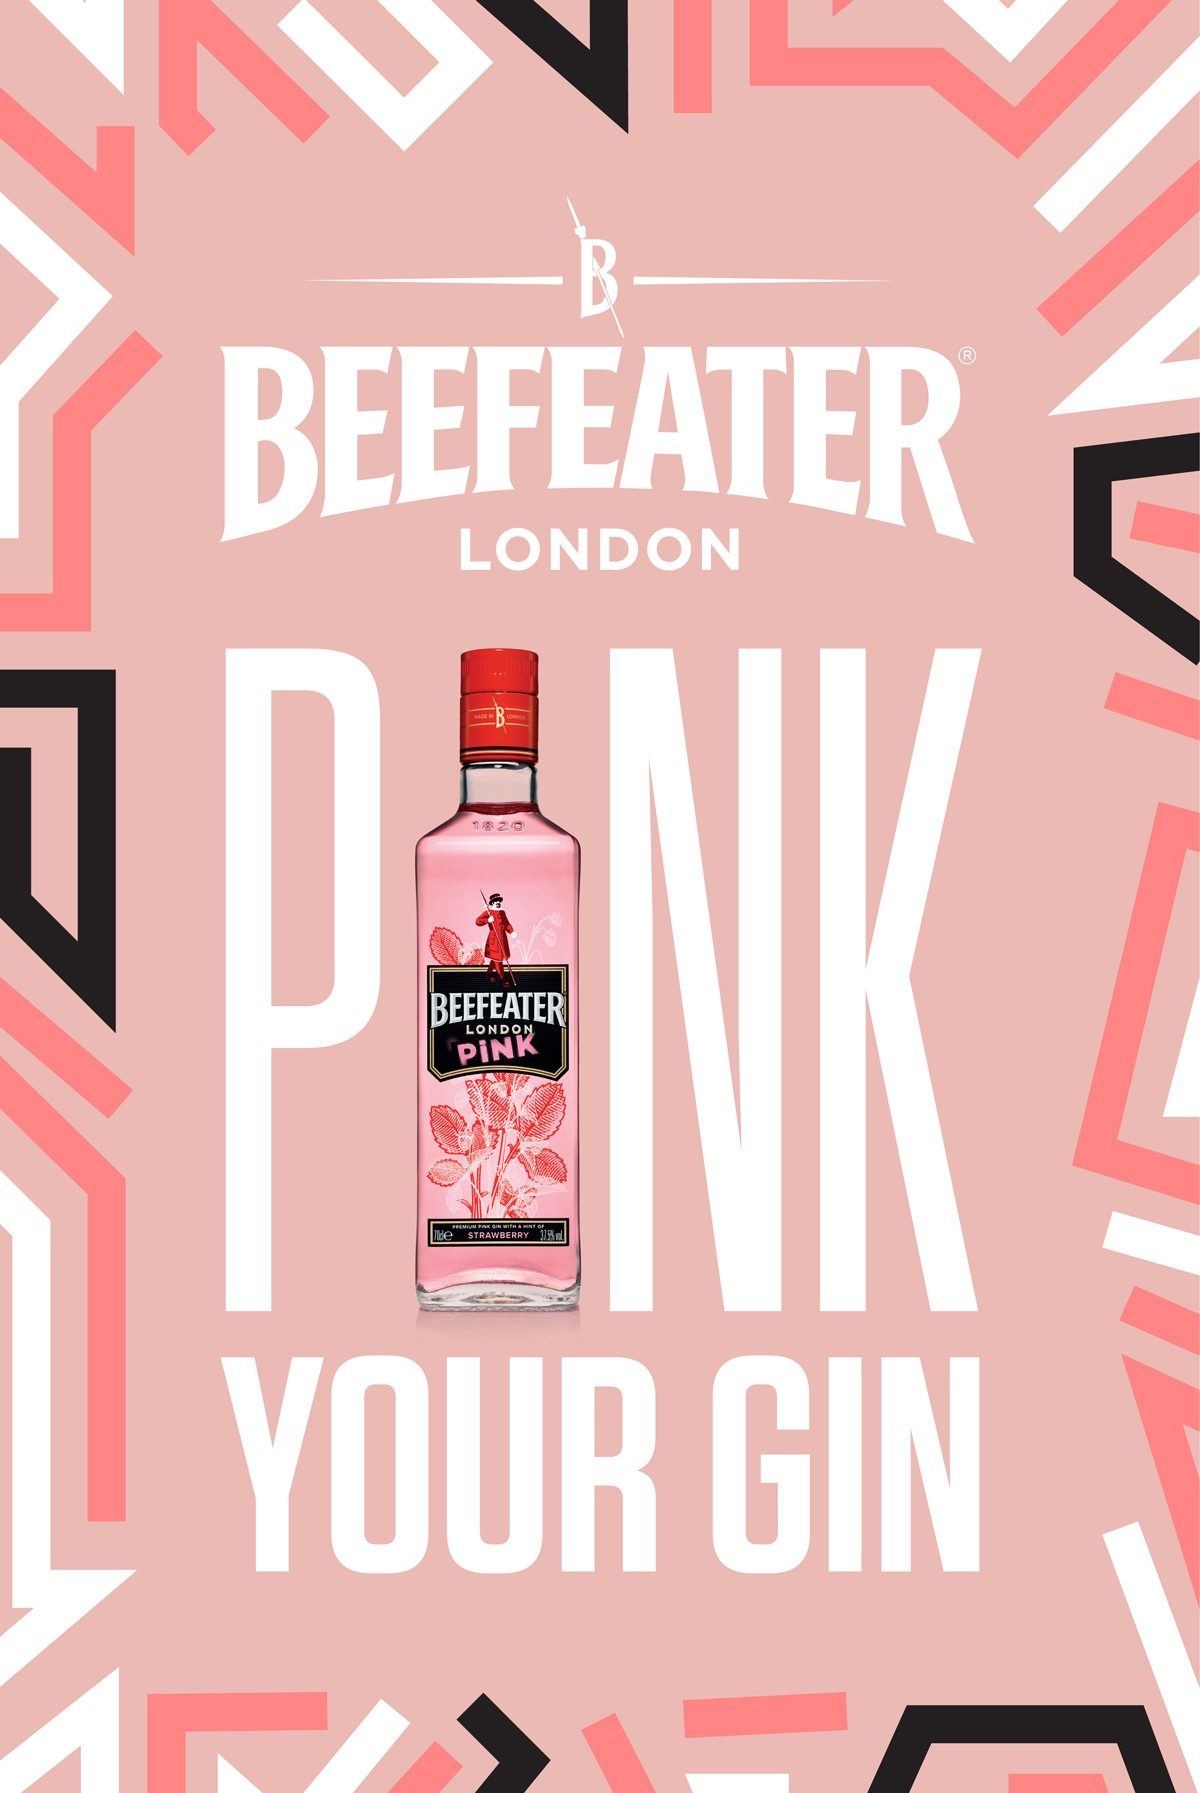 Beefeater Gin Rolls Out Global Campaign For Pink Variant photo